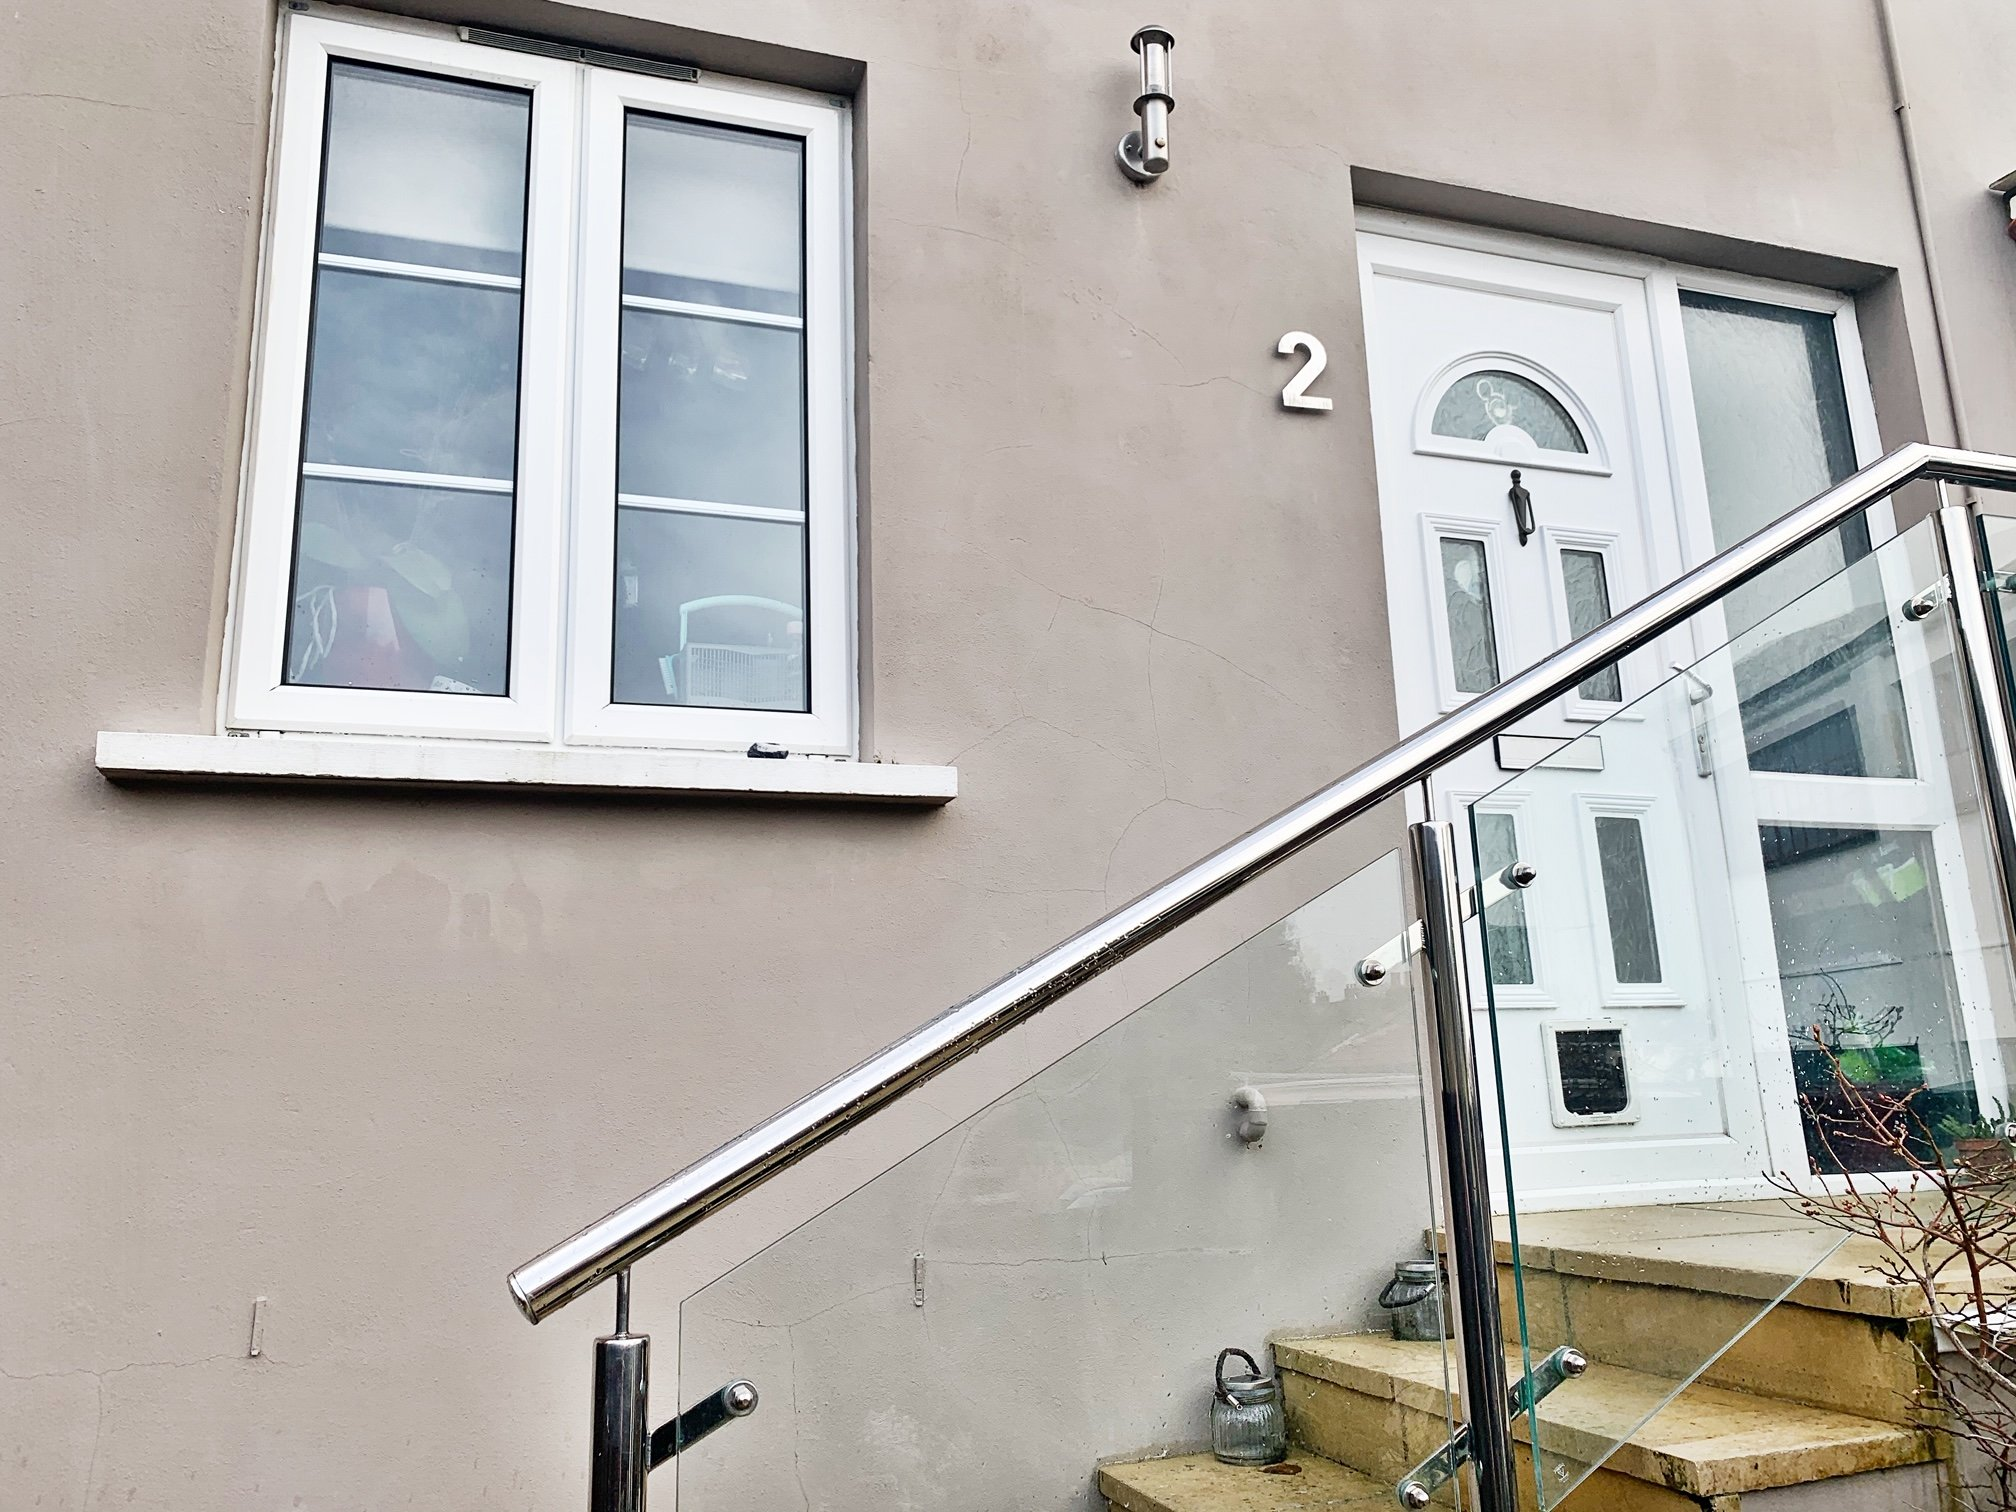 3 Bedroom 3 Storey Ideal Modern Family Home